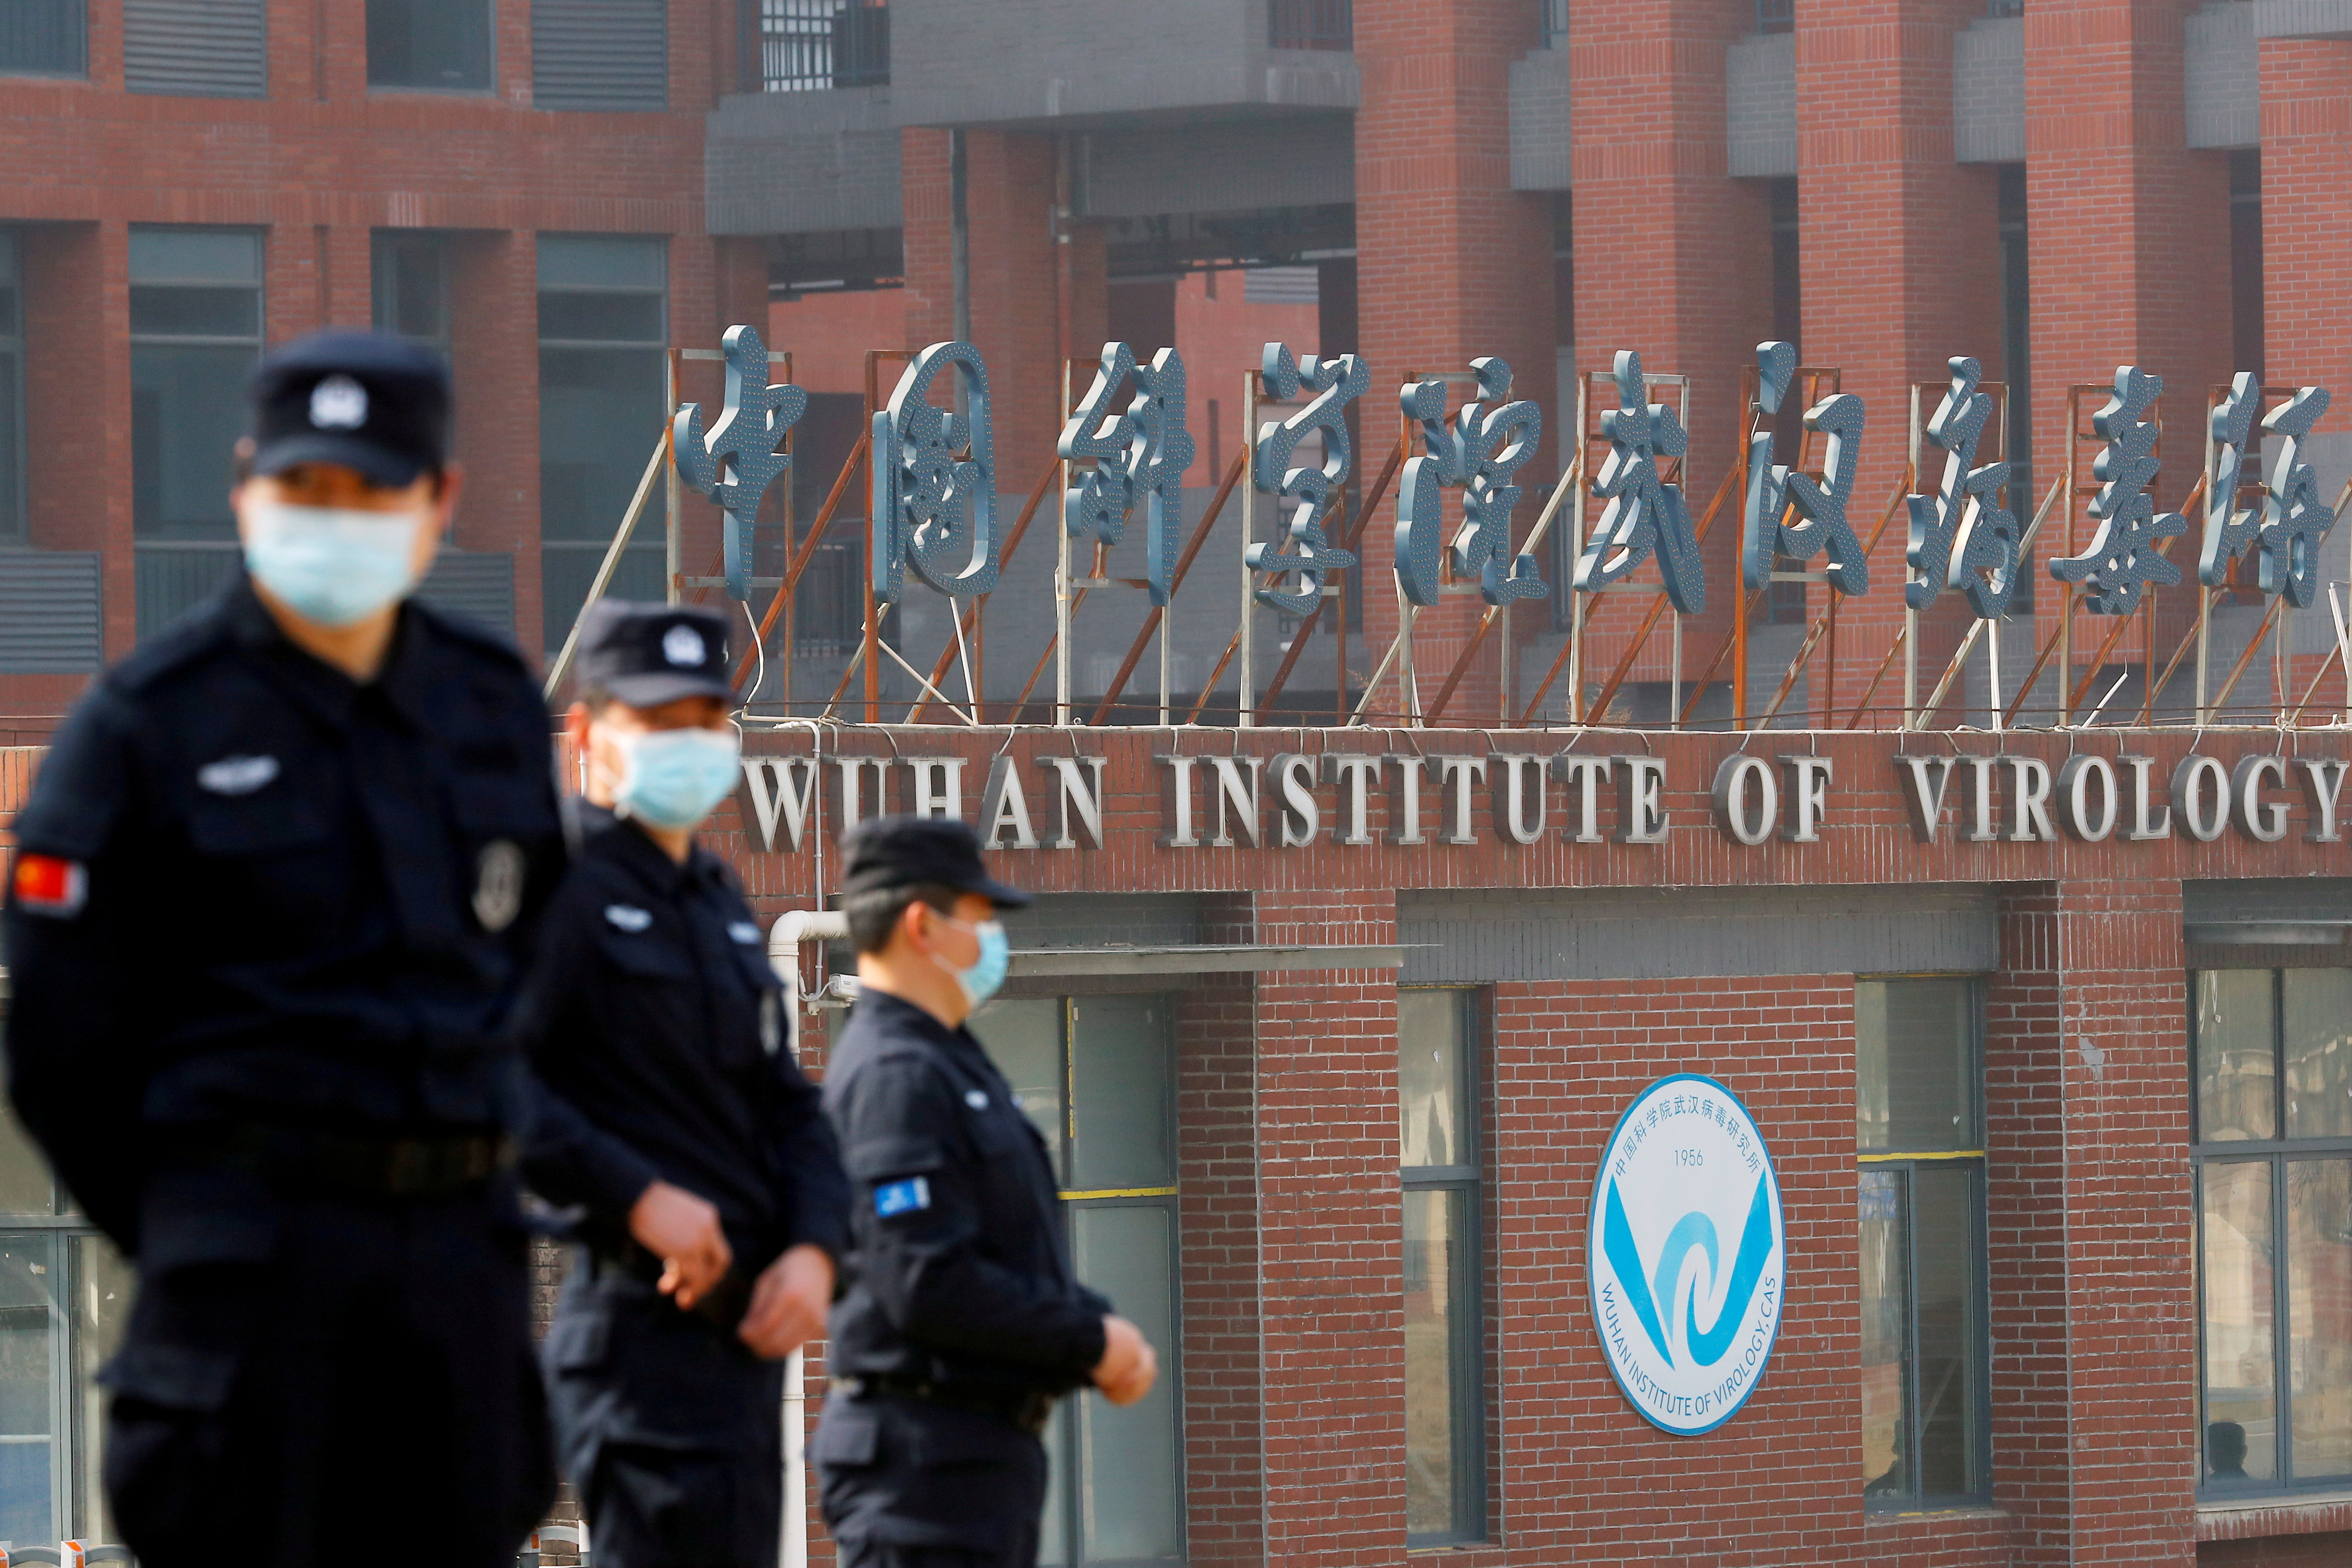 FILE PHOTO: Security personnel keep watch outside the Wuhan Institute of Virology during the visit by the World Health Organization (WHO) team tasked with investigating the origins of the coronavirus disease (COVID-19), inWuhan, Hubei province, China February 3, 2021. REUTERS/Thomas Peter/File Photo/File Photo